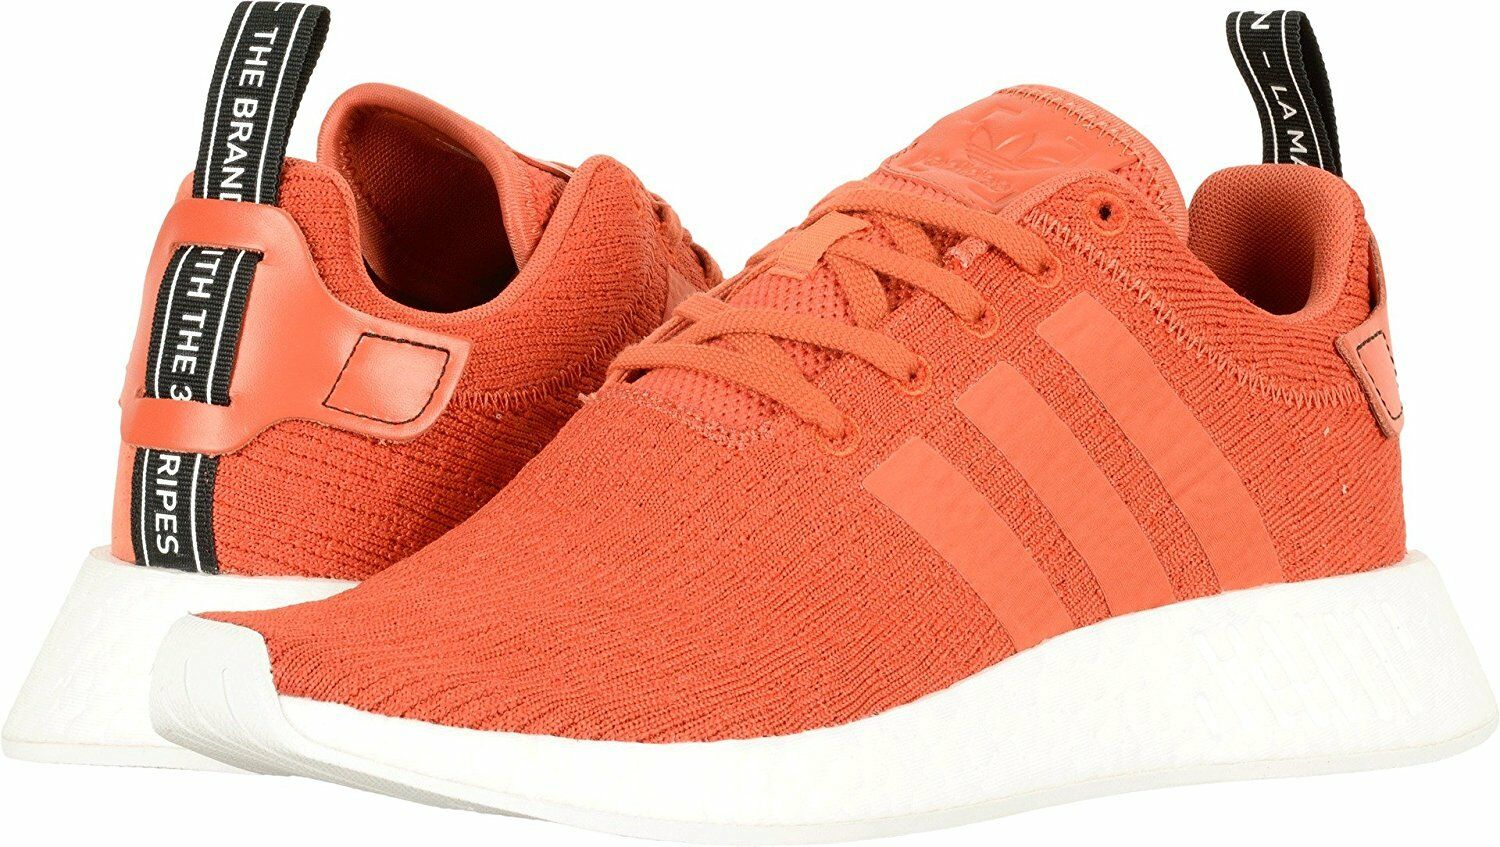 Adidas Homme NMD_R2 PK Chaussures Running Orange/Blanc BY9915